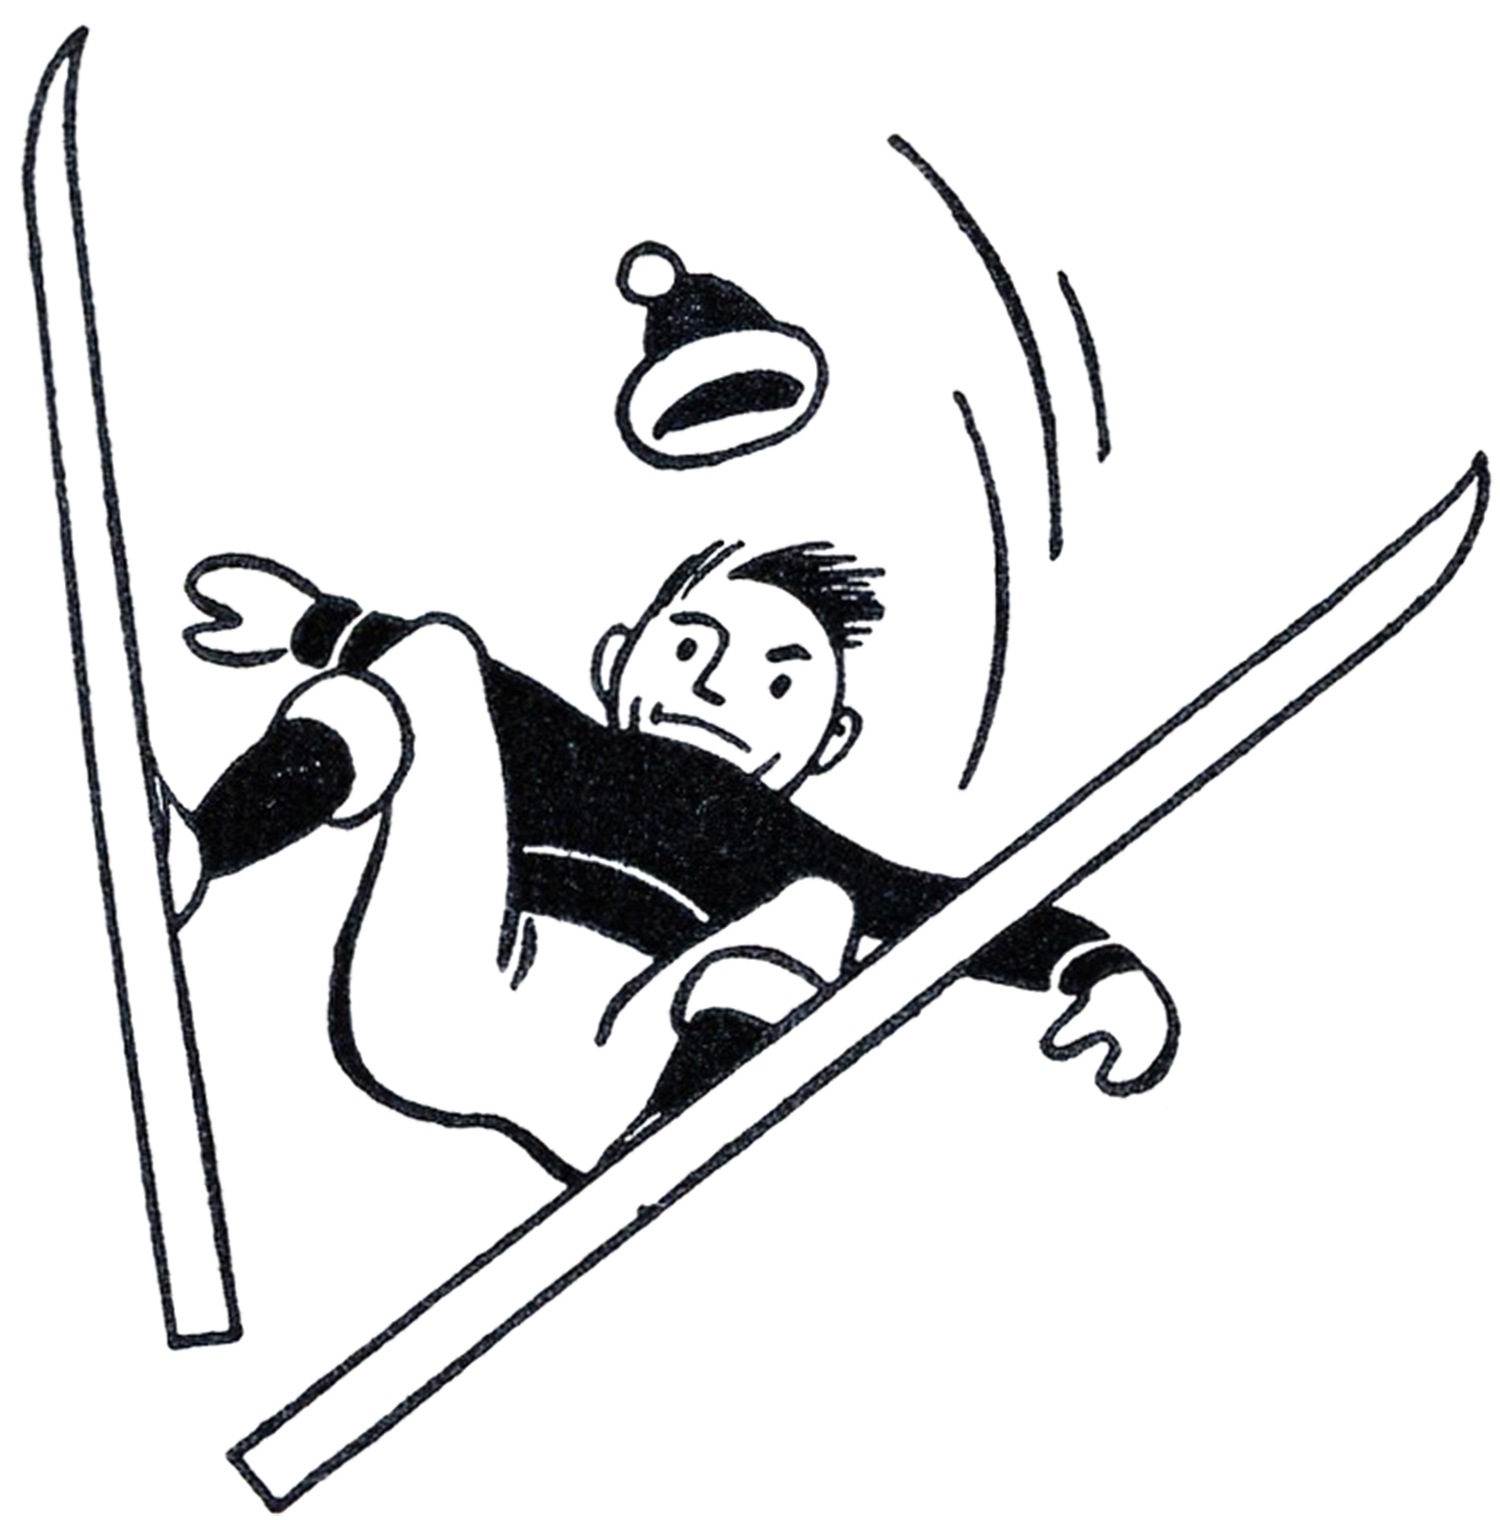 Crash clipart skier Skiing The Clipart Skiing Retro